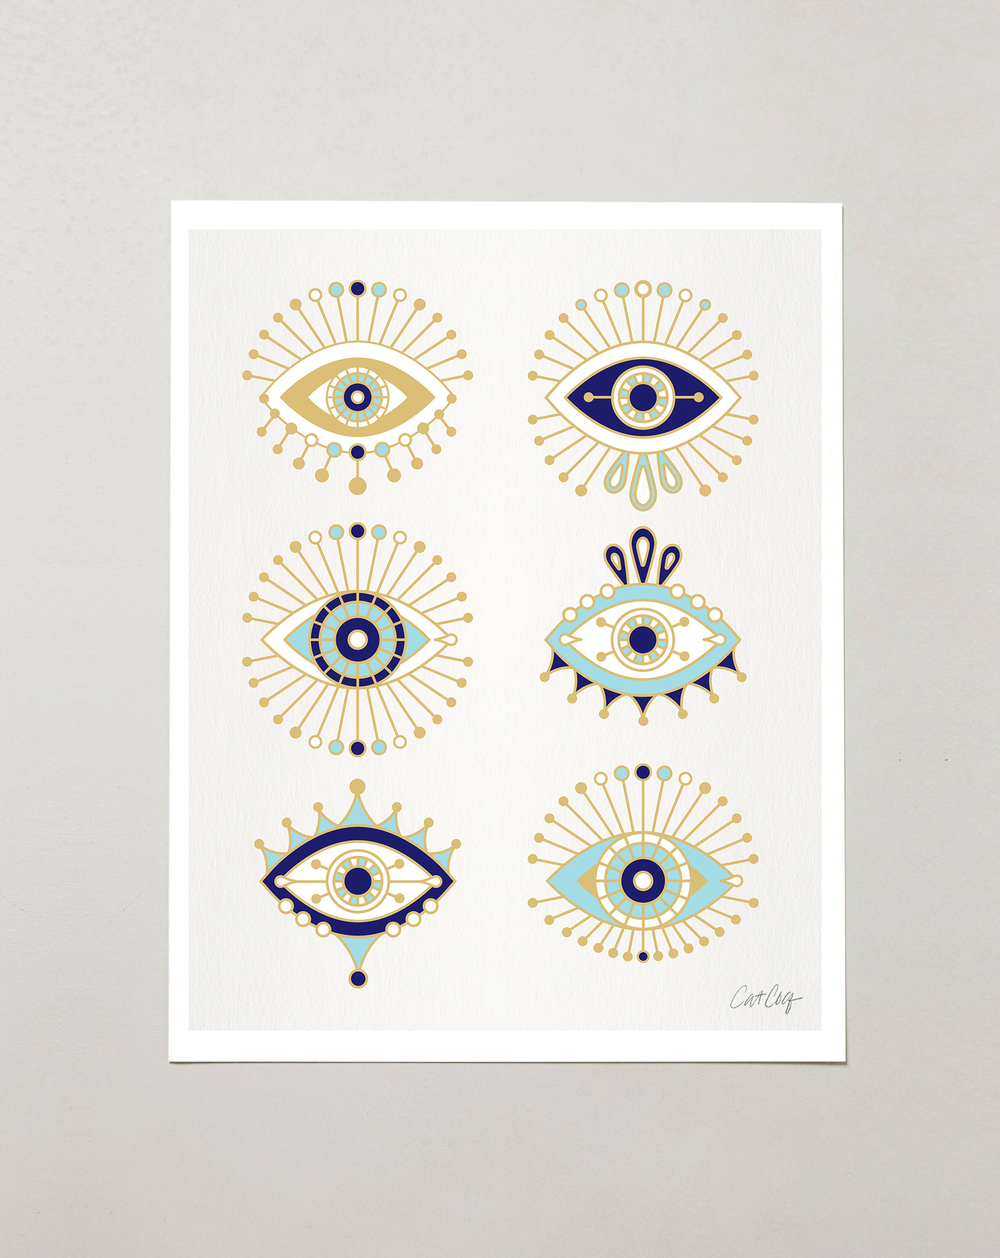 White Evil Eye Collection art prints available here.